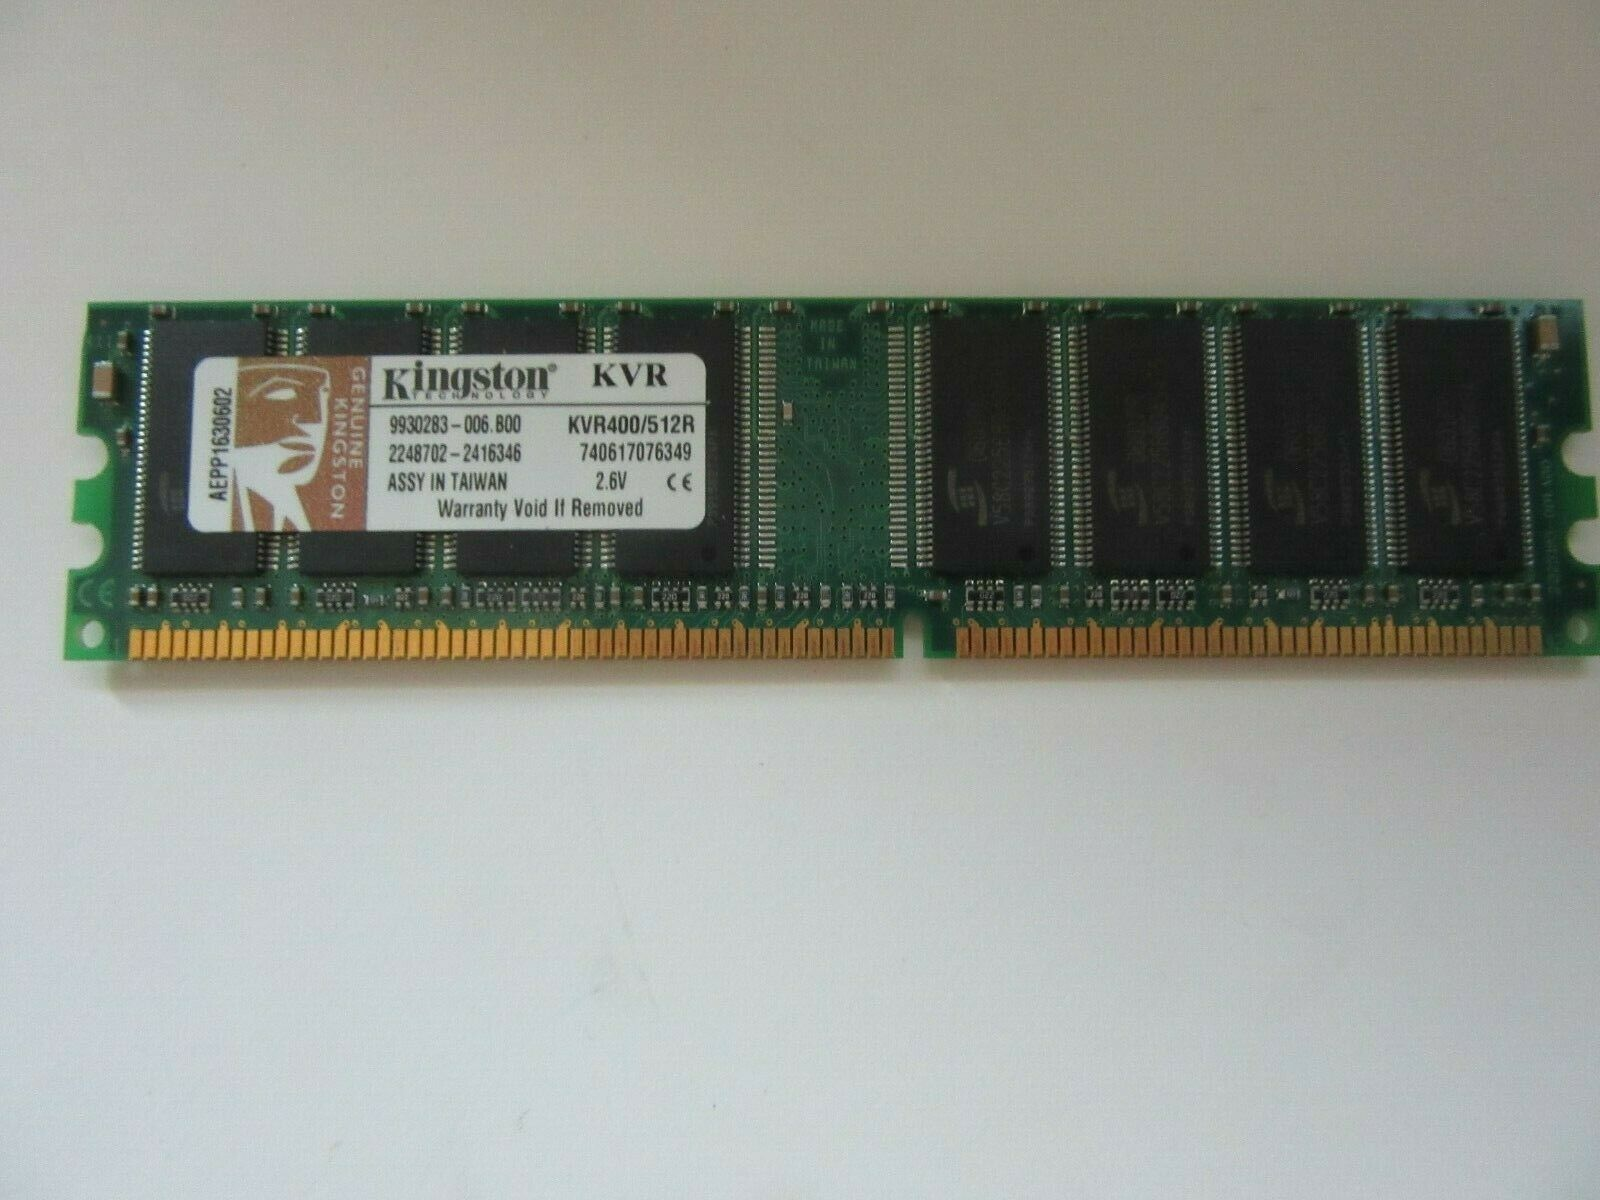 Primary image for Kingston PC3200 (DDR-400) 512 MB DIMM 400 MHz PC-3200 DDR Memory (KVR400/512R)